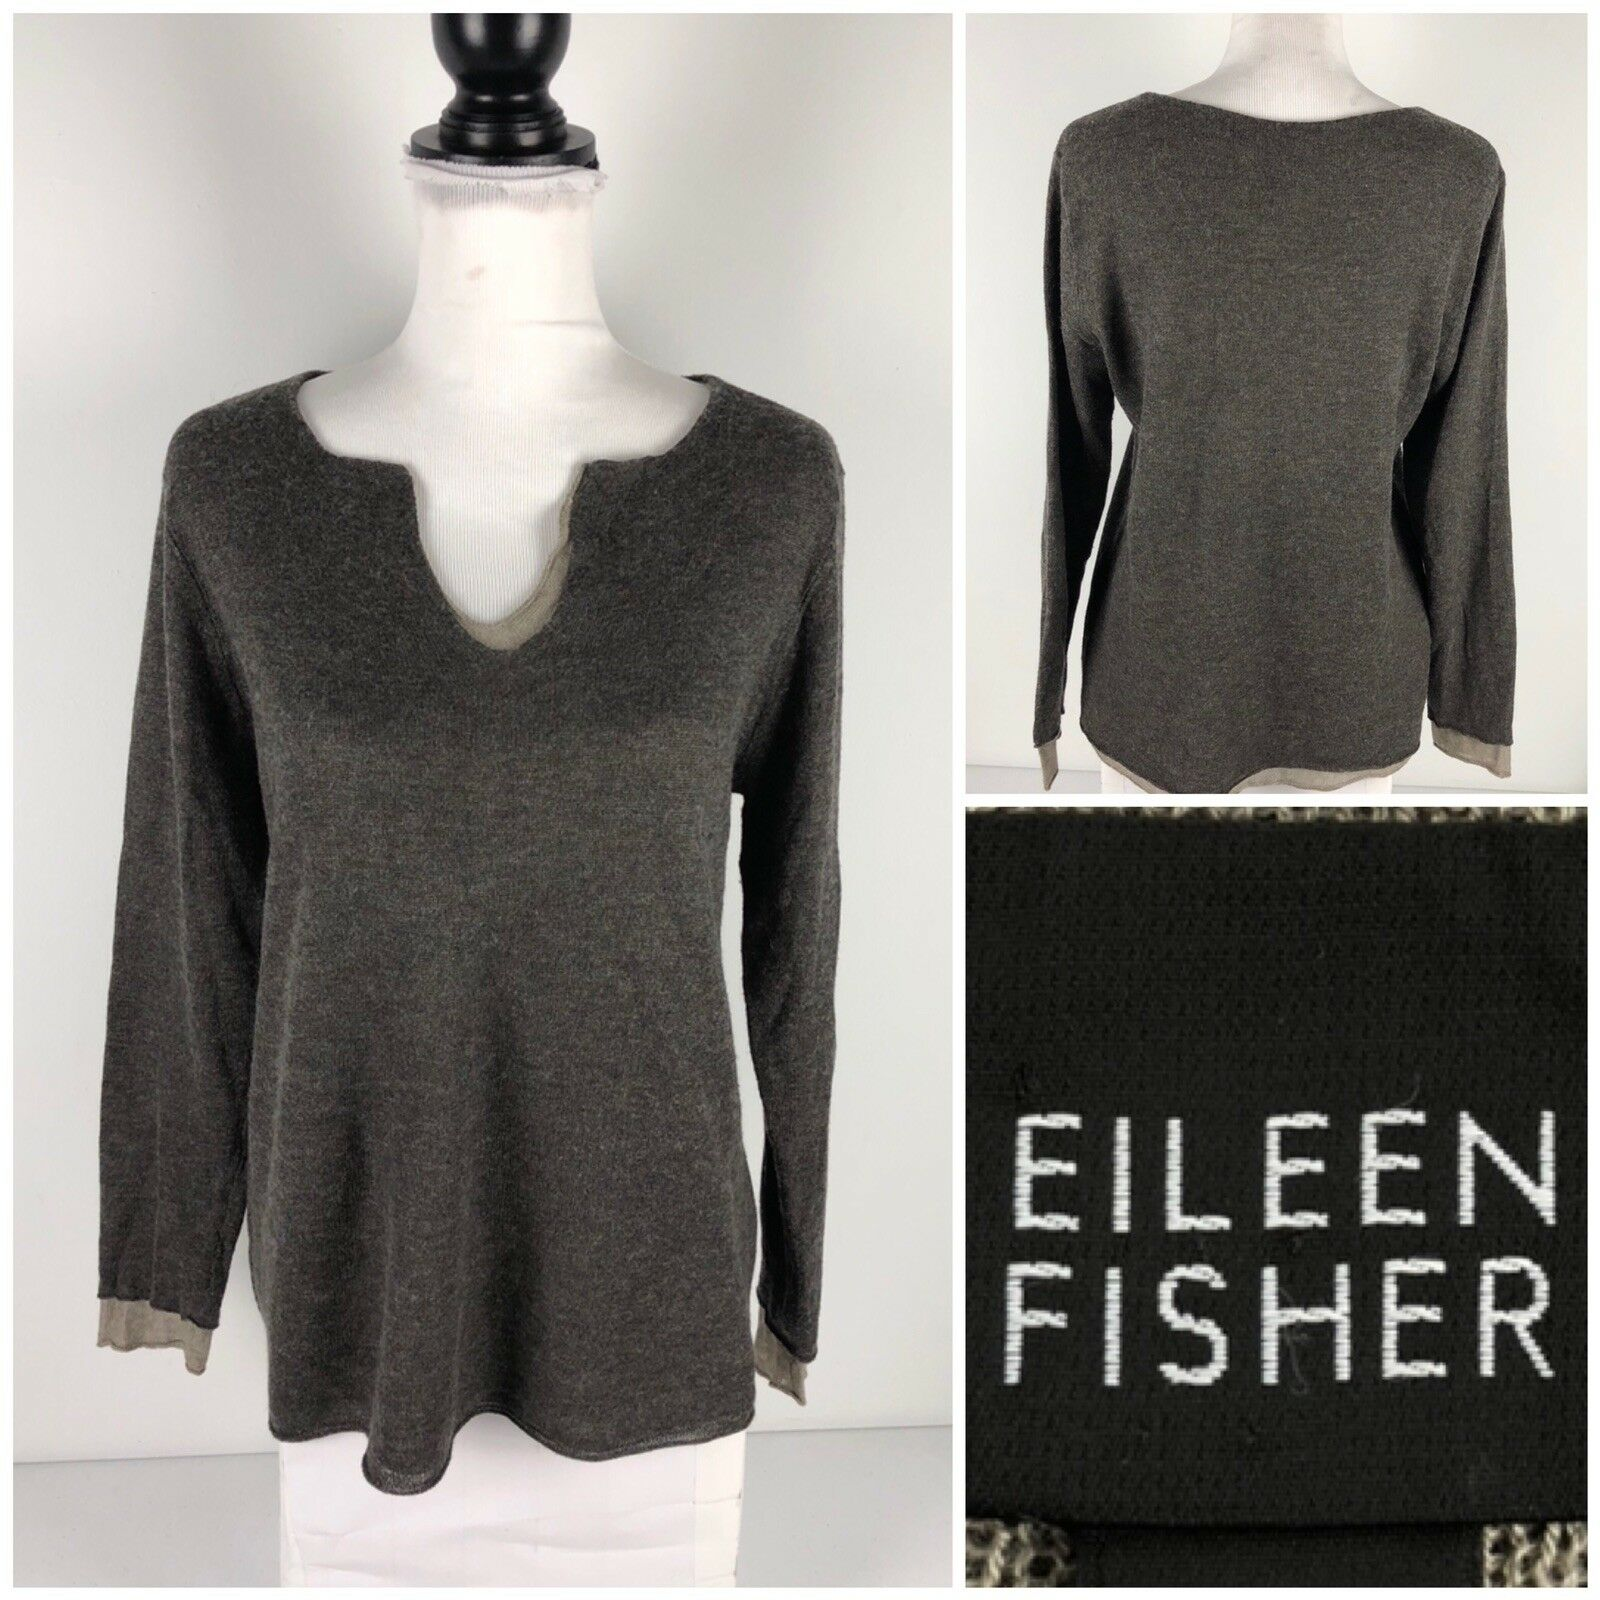 Eileen Fisher Size Size Size Small Sweater Lightweight 2 Ply Viscose Wool Blend Umber EUC 122038